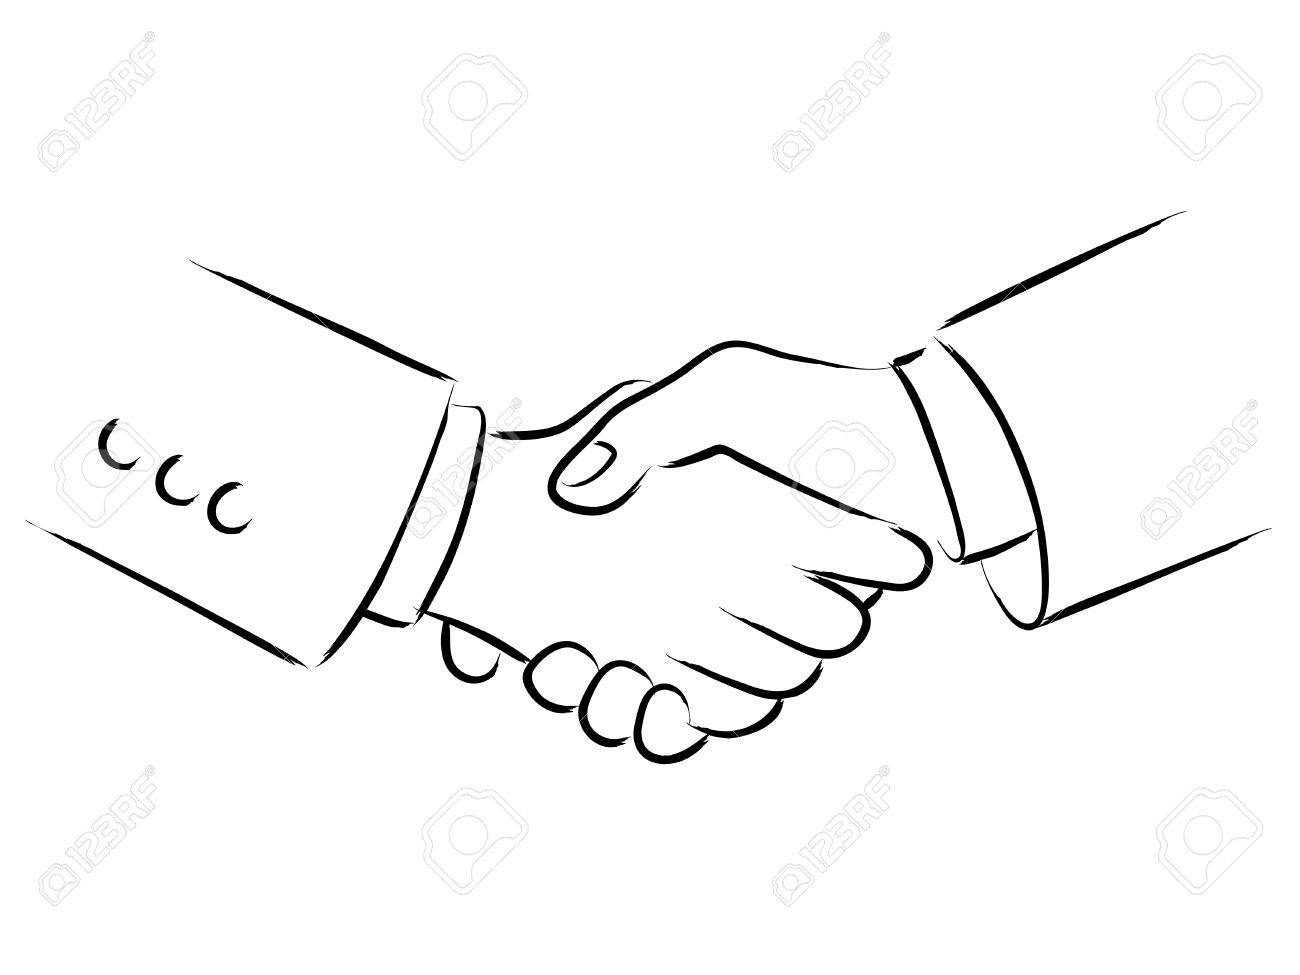 1300x975 Simple Line Art Of Shaking Hands Royalty Free Cliparts, Vectors